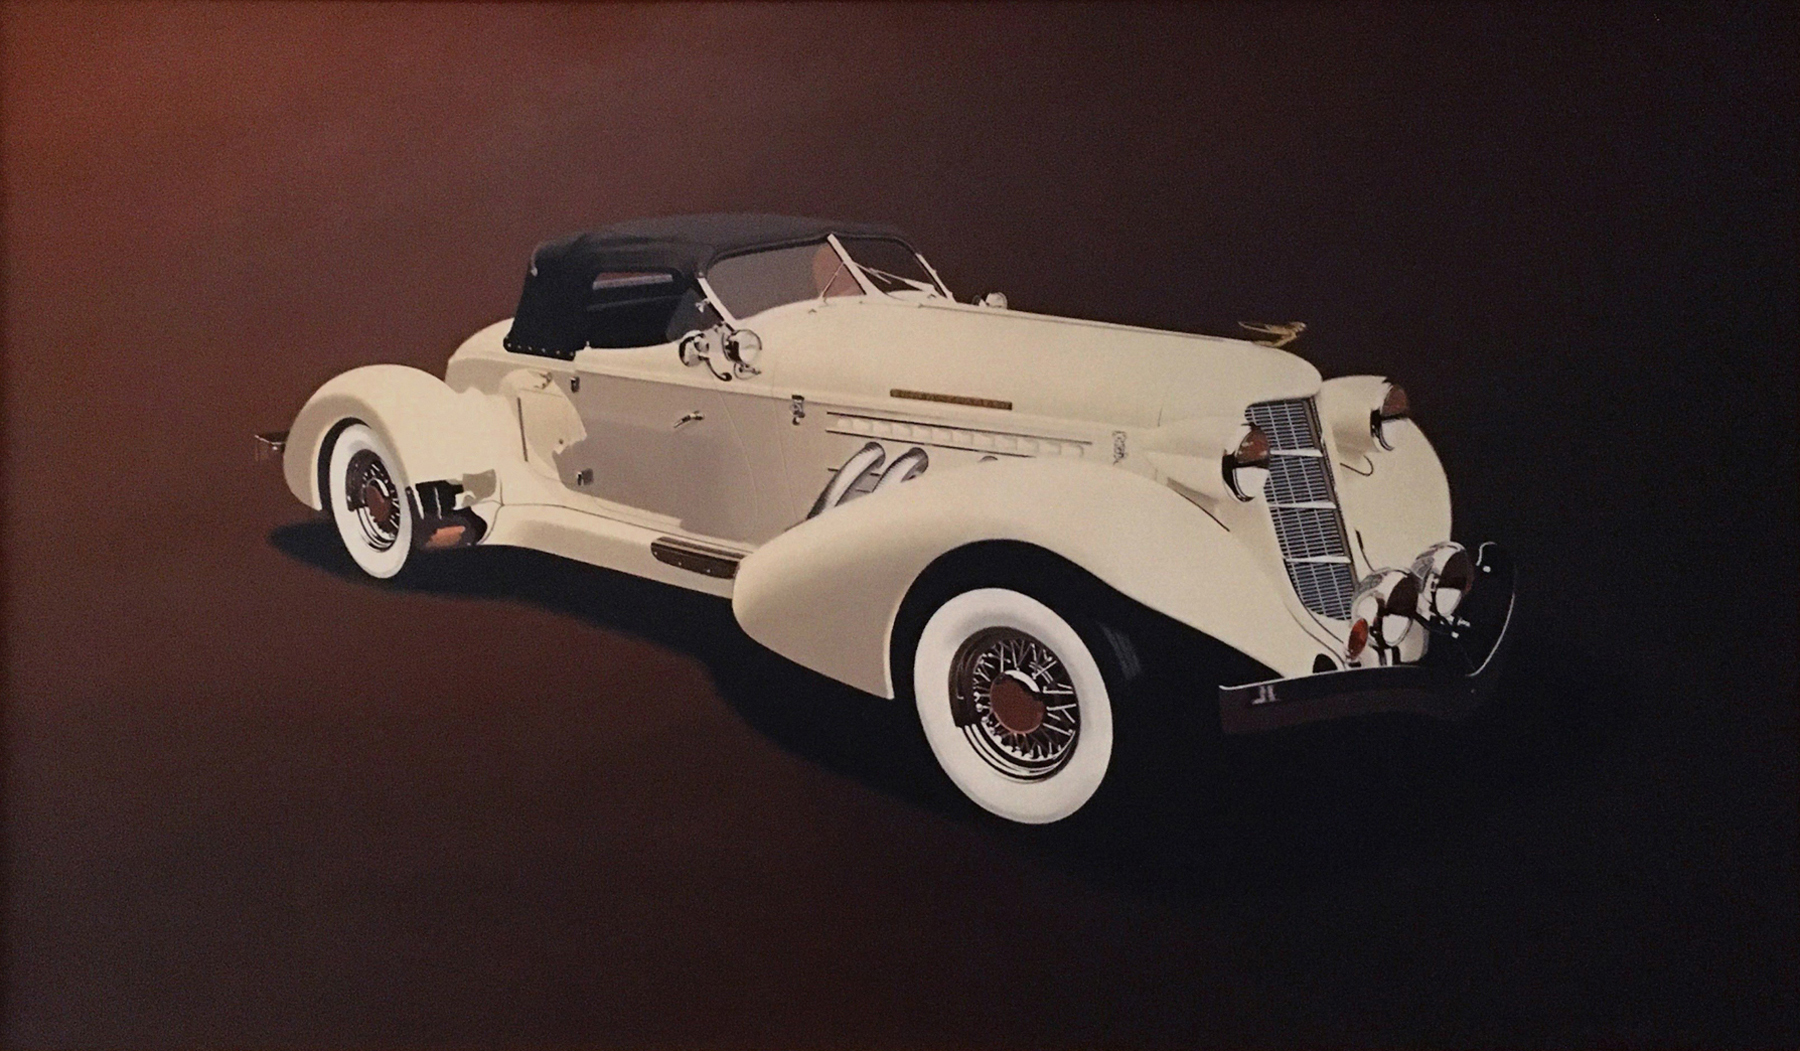 Boattail Auburn by John Mills, Photorealism artist and car ad illustrator as seen on American Pickers.